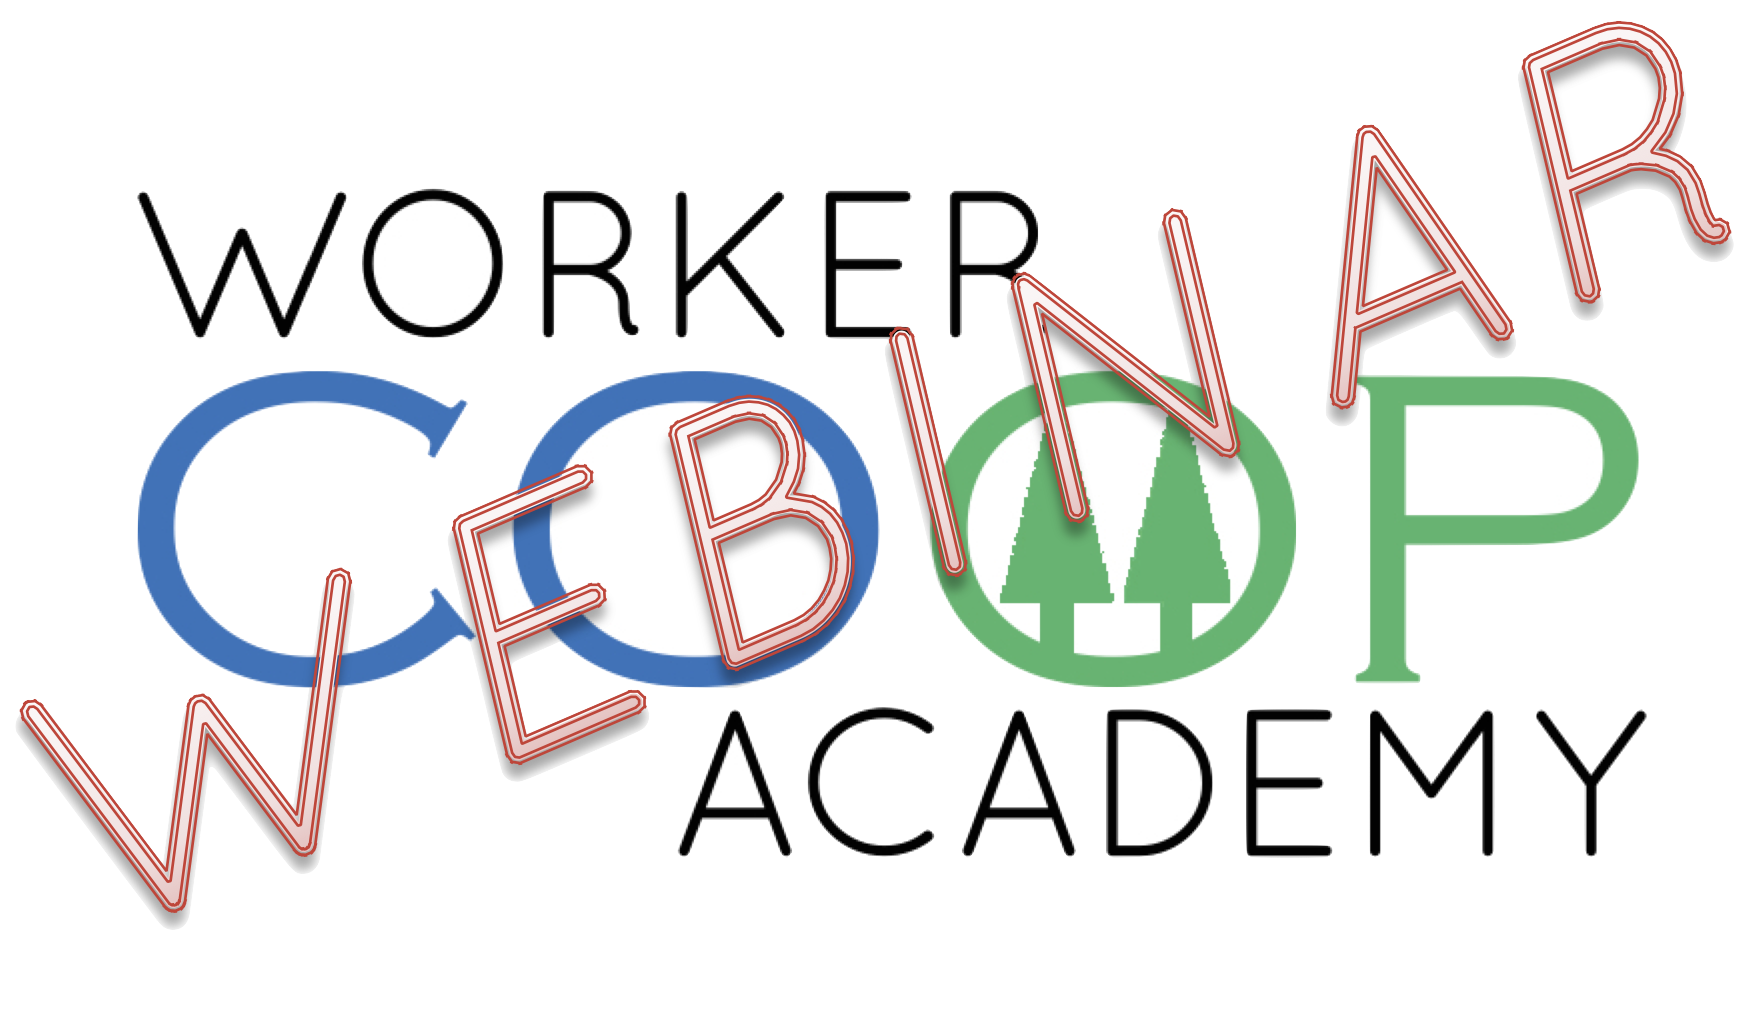 Want to know more about the Worker Coop Academy? Join us on ourwebinar on May 13th for a lunch time webinar!